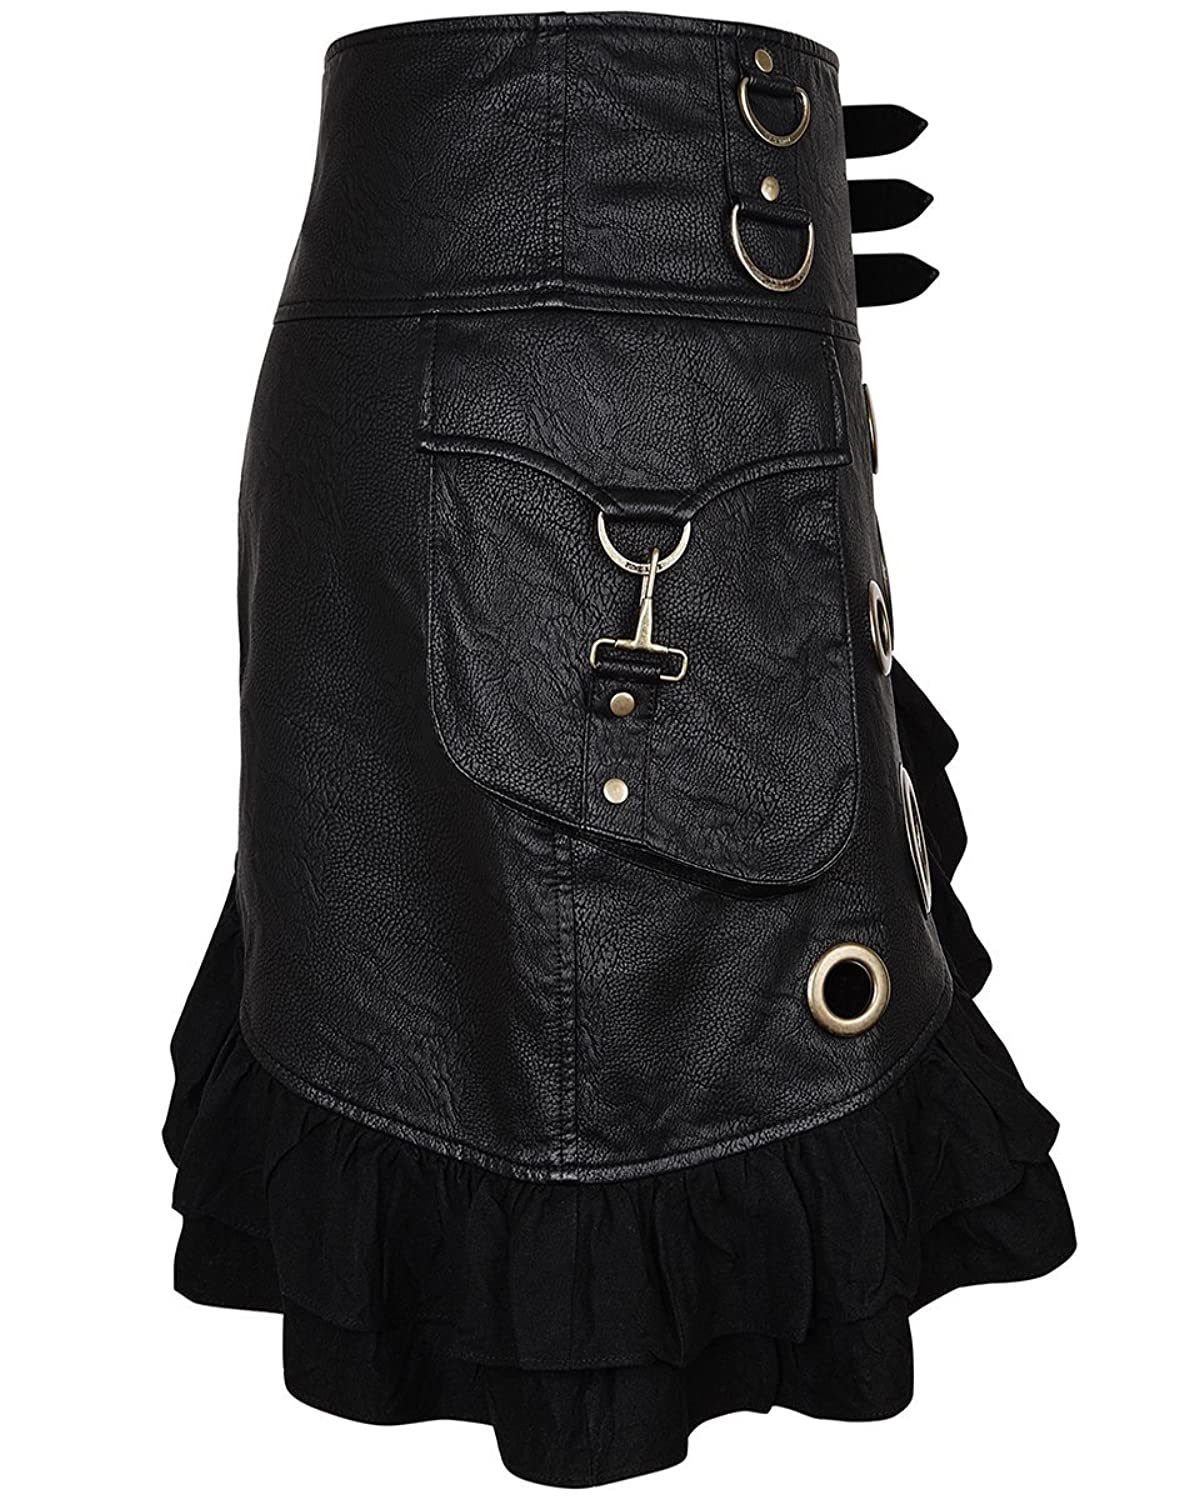 Punk Rave Steampunk Skirt Black Faux Leather Copper Goth DieselPunk Military